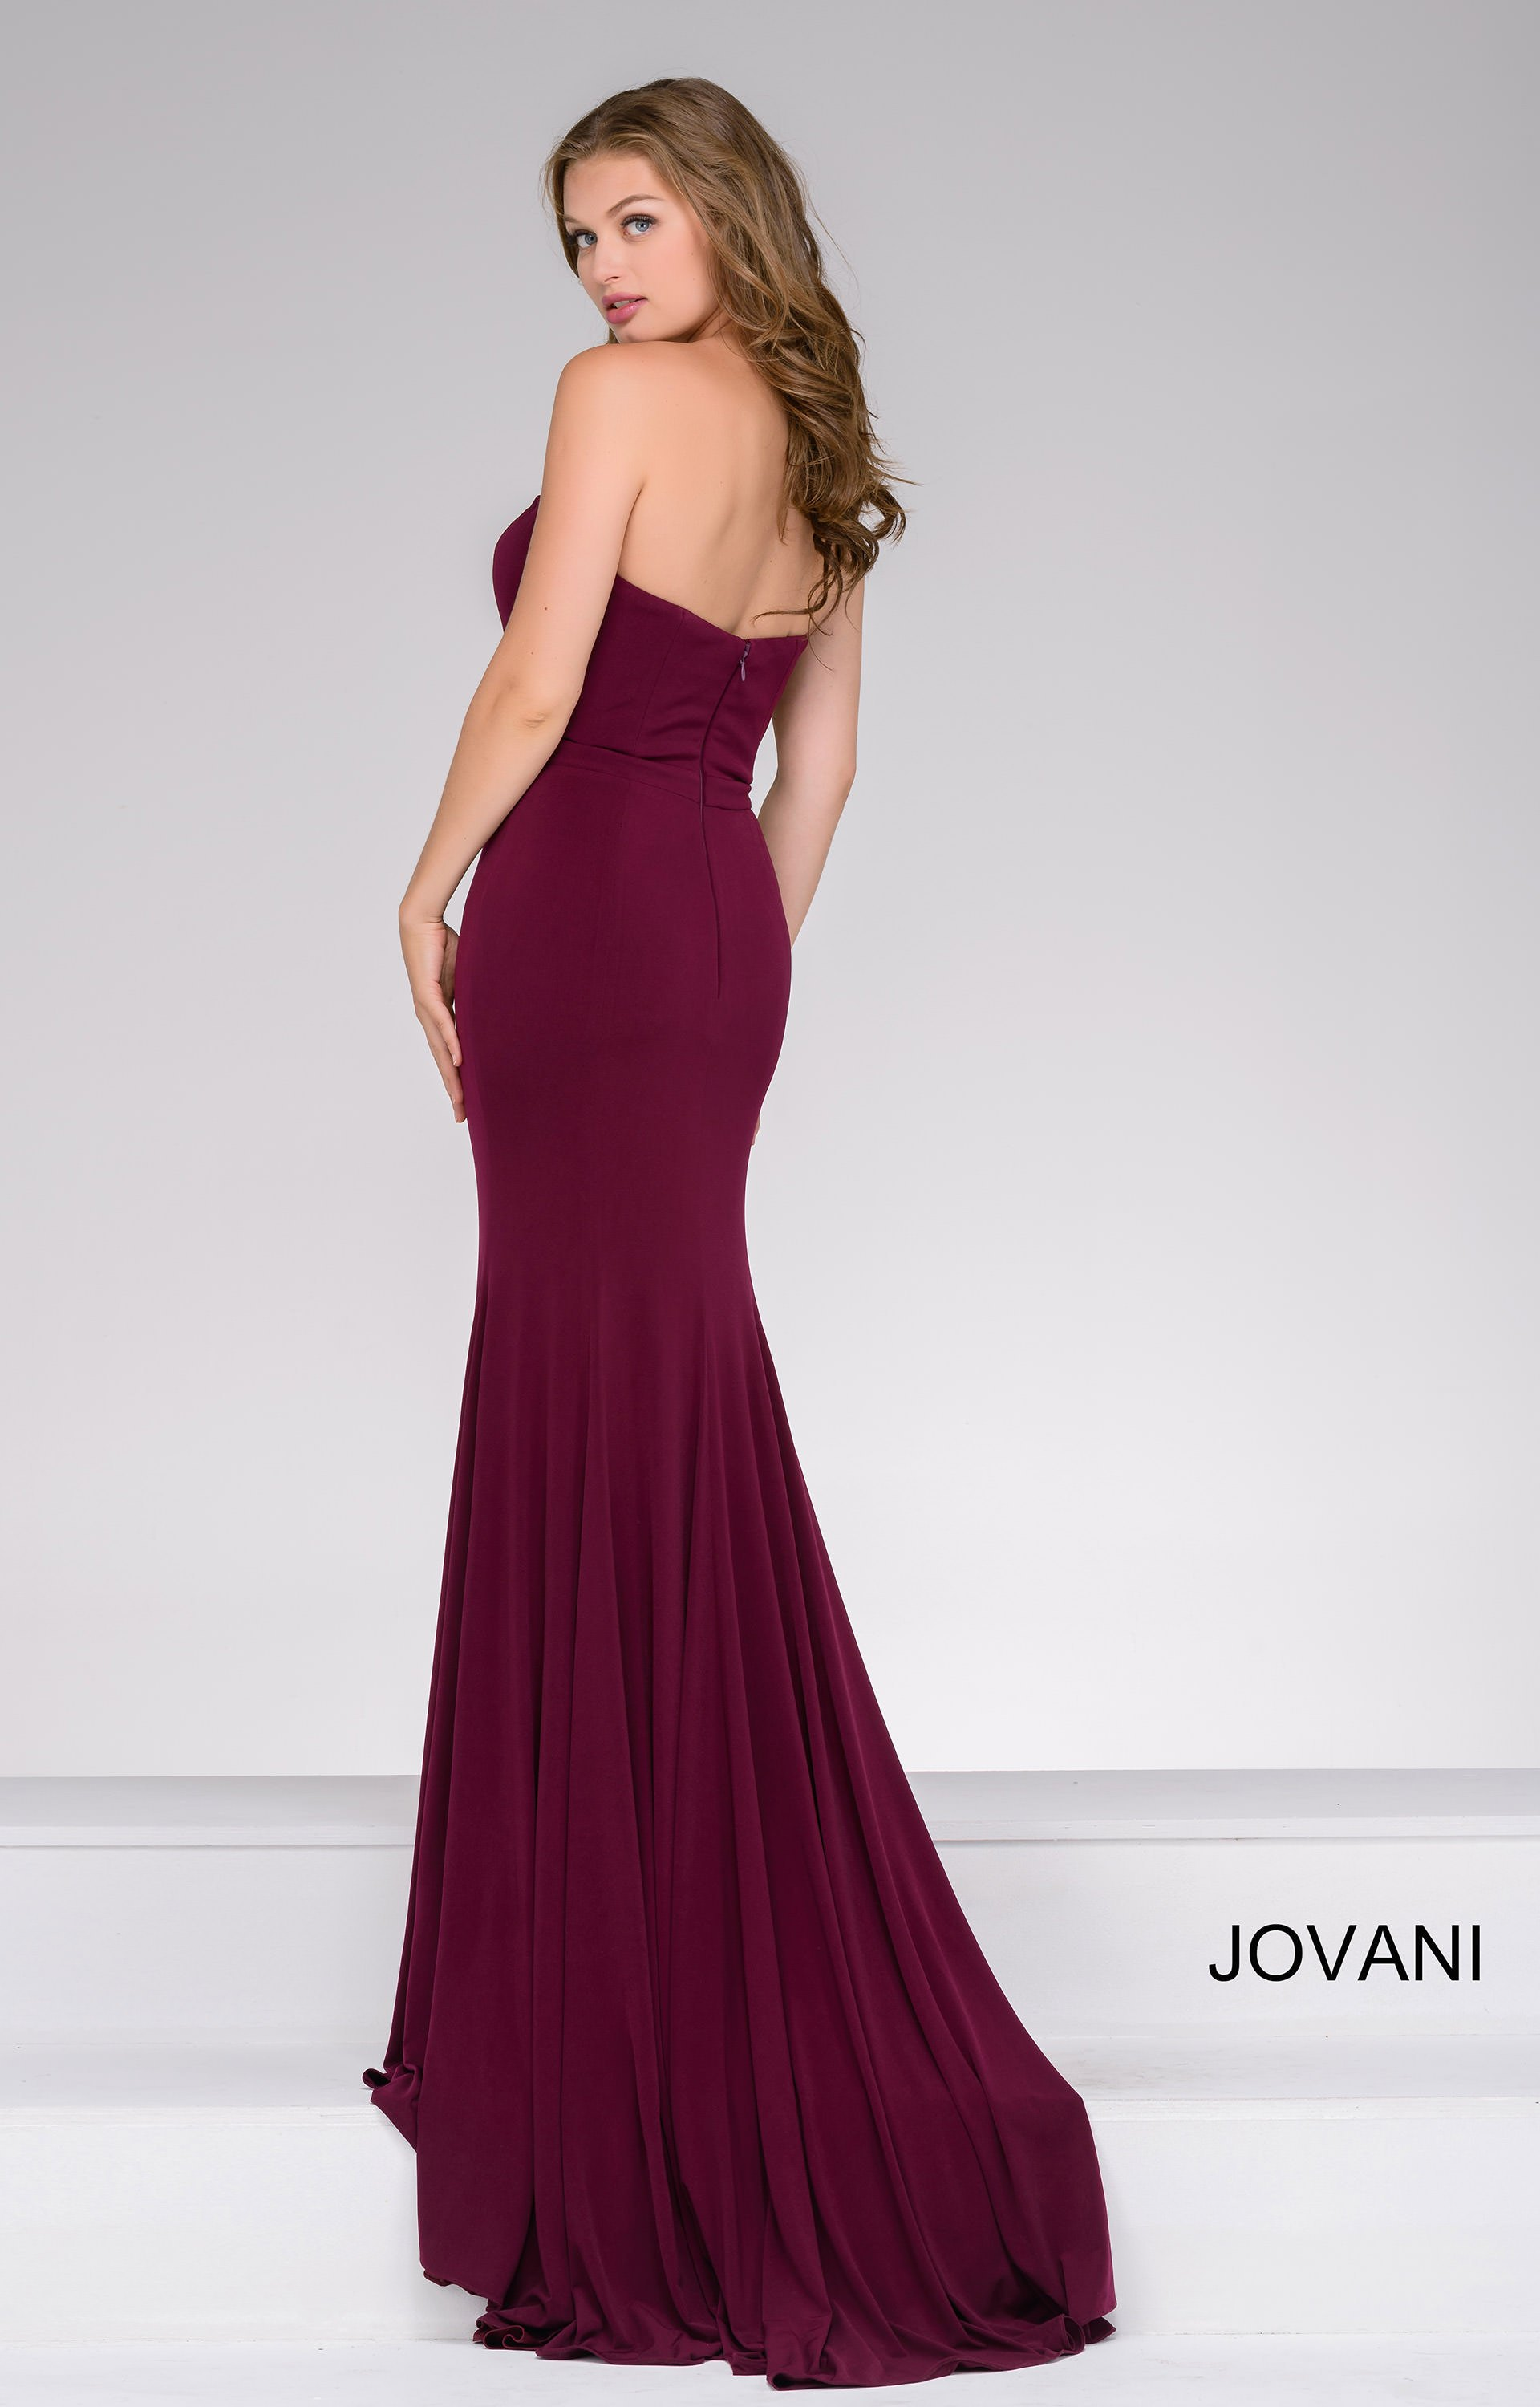 Jovani 42842 - Strapless Deep V neckline Jersey Dress Prom